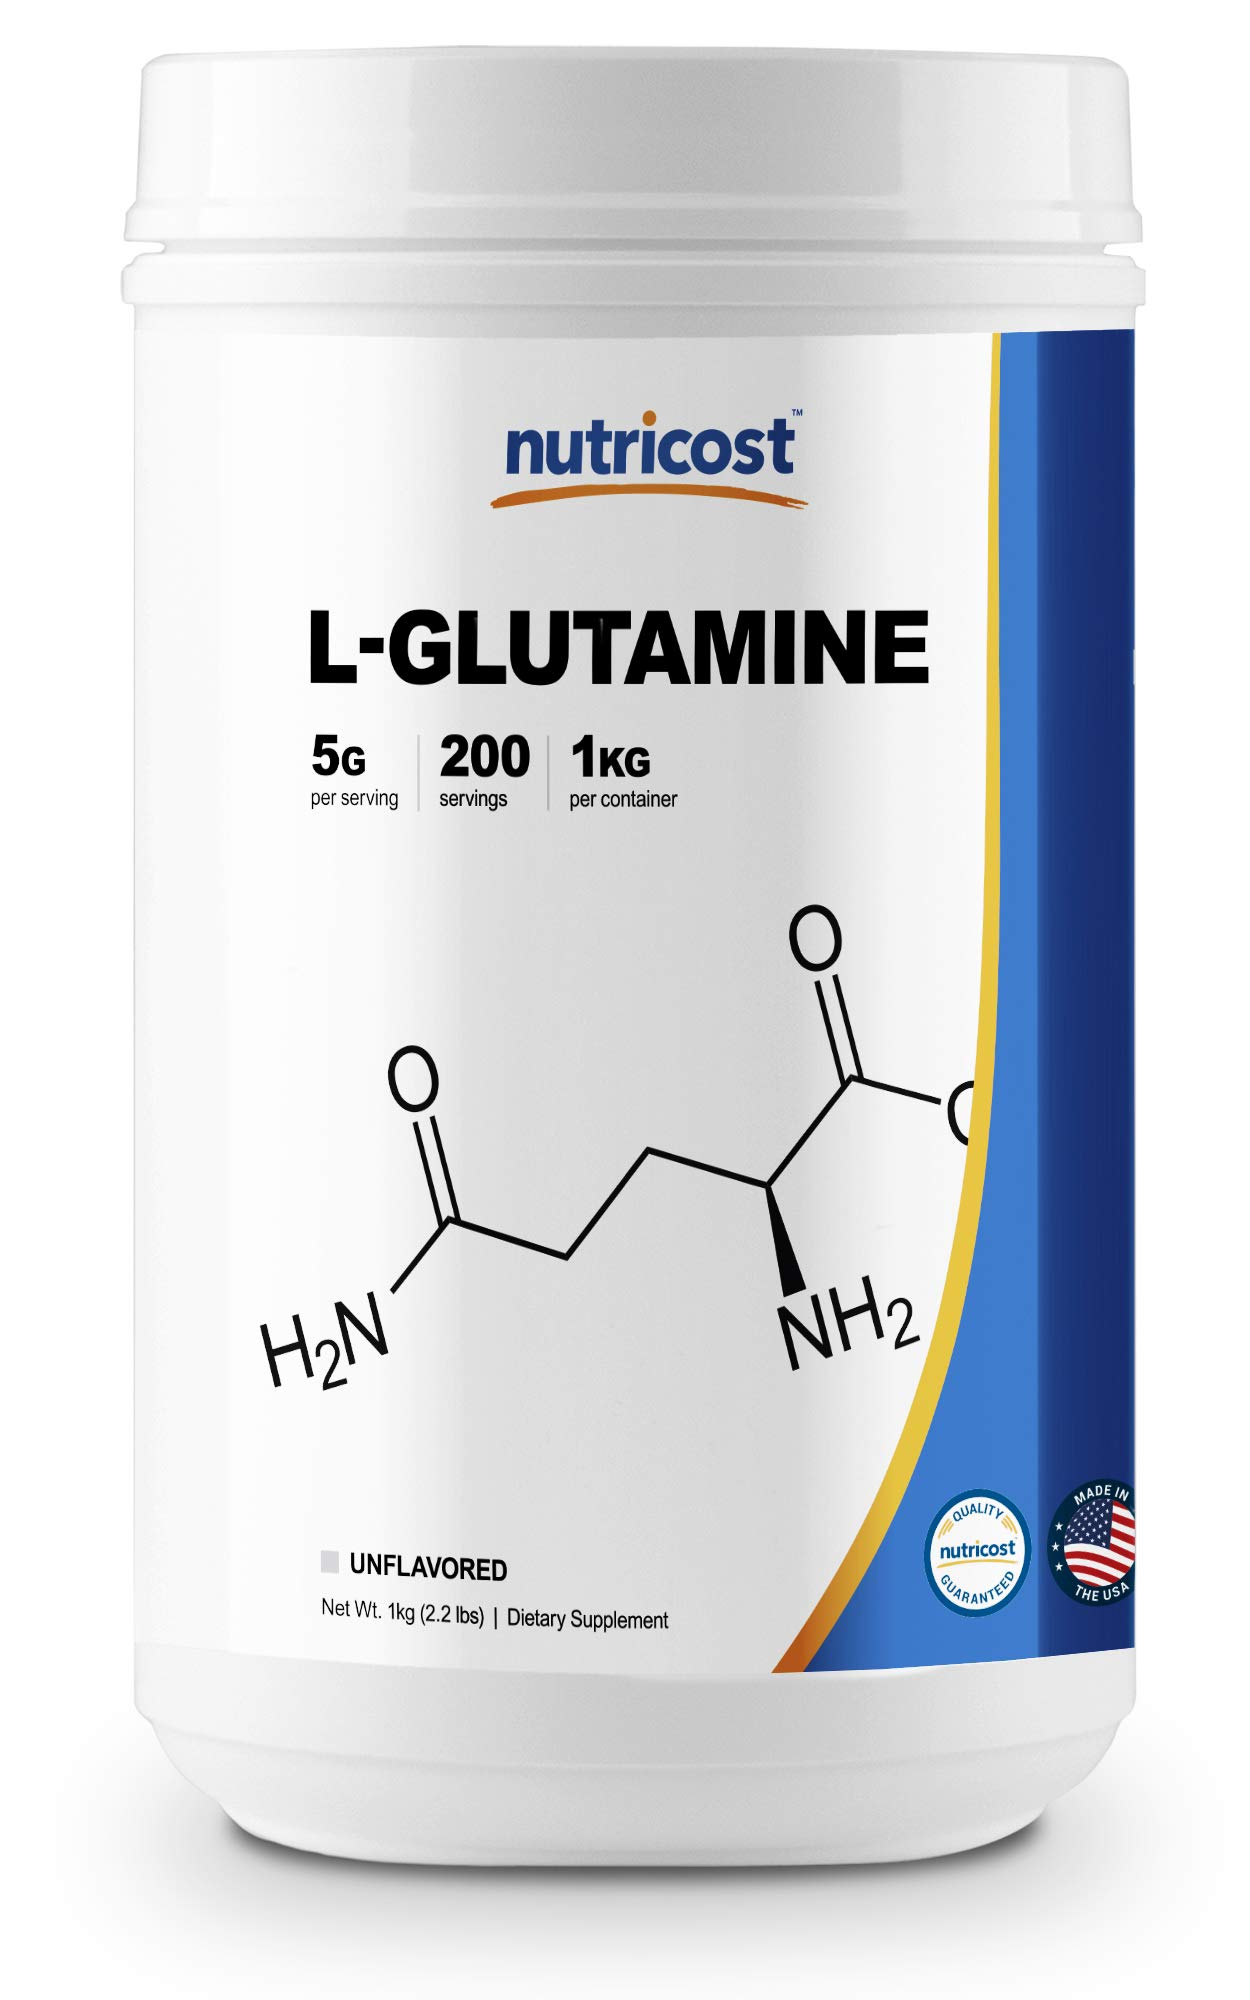 Nutricost L-Glutamine Powder 1 KG - Pure L Glutamine - 5000mg per Serving - High Purity